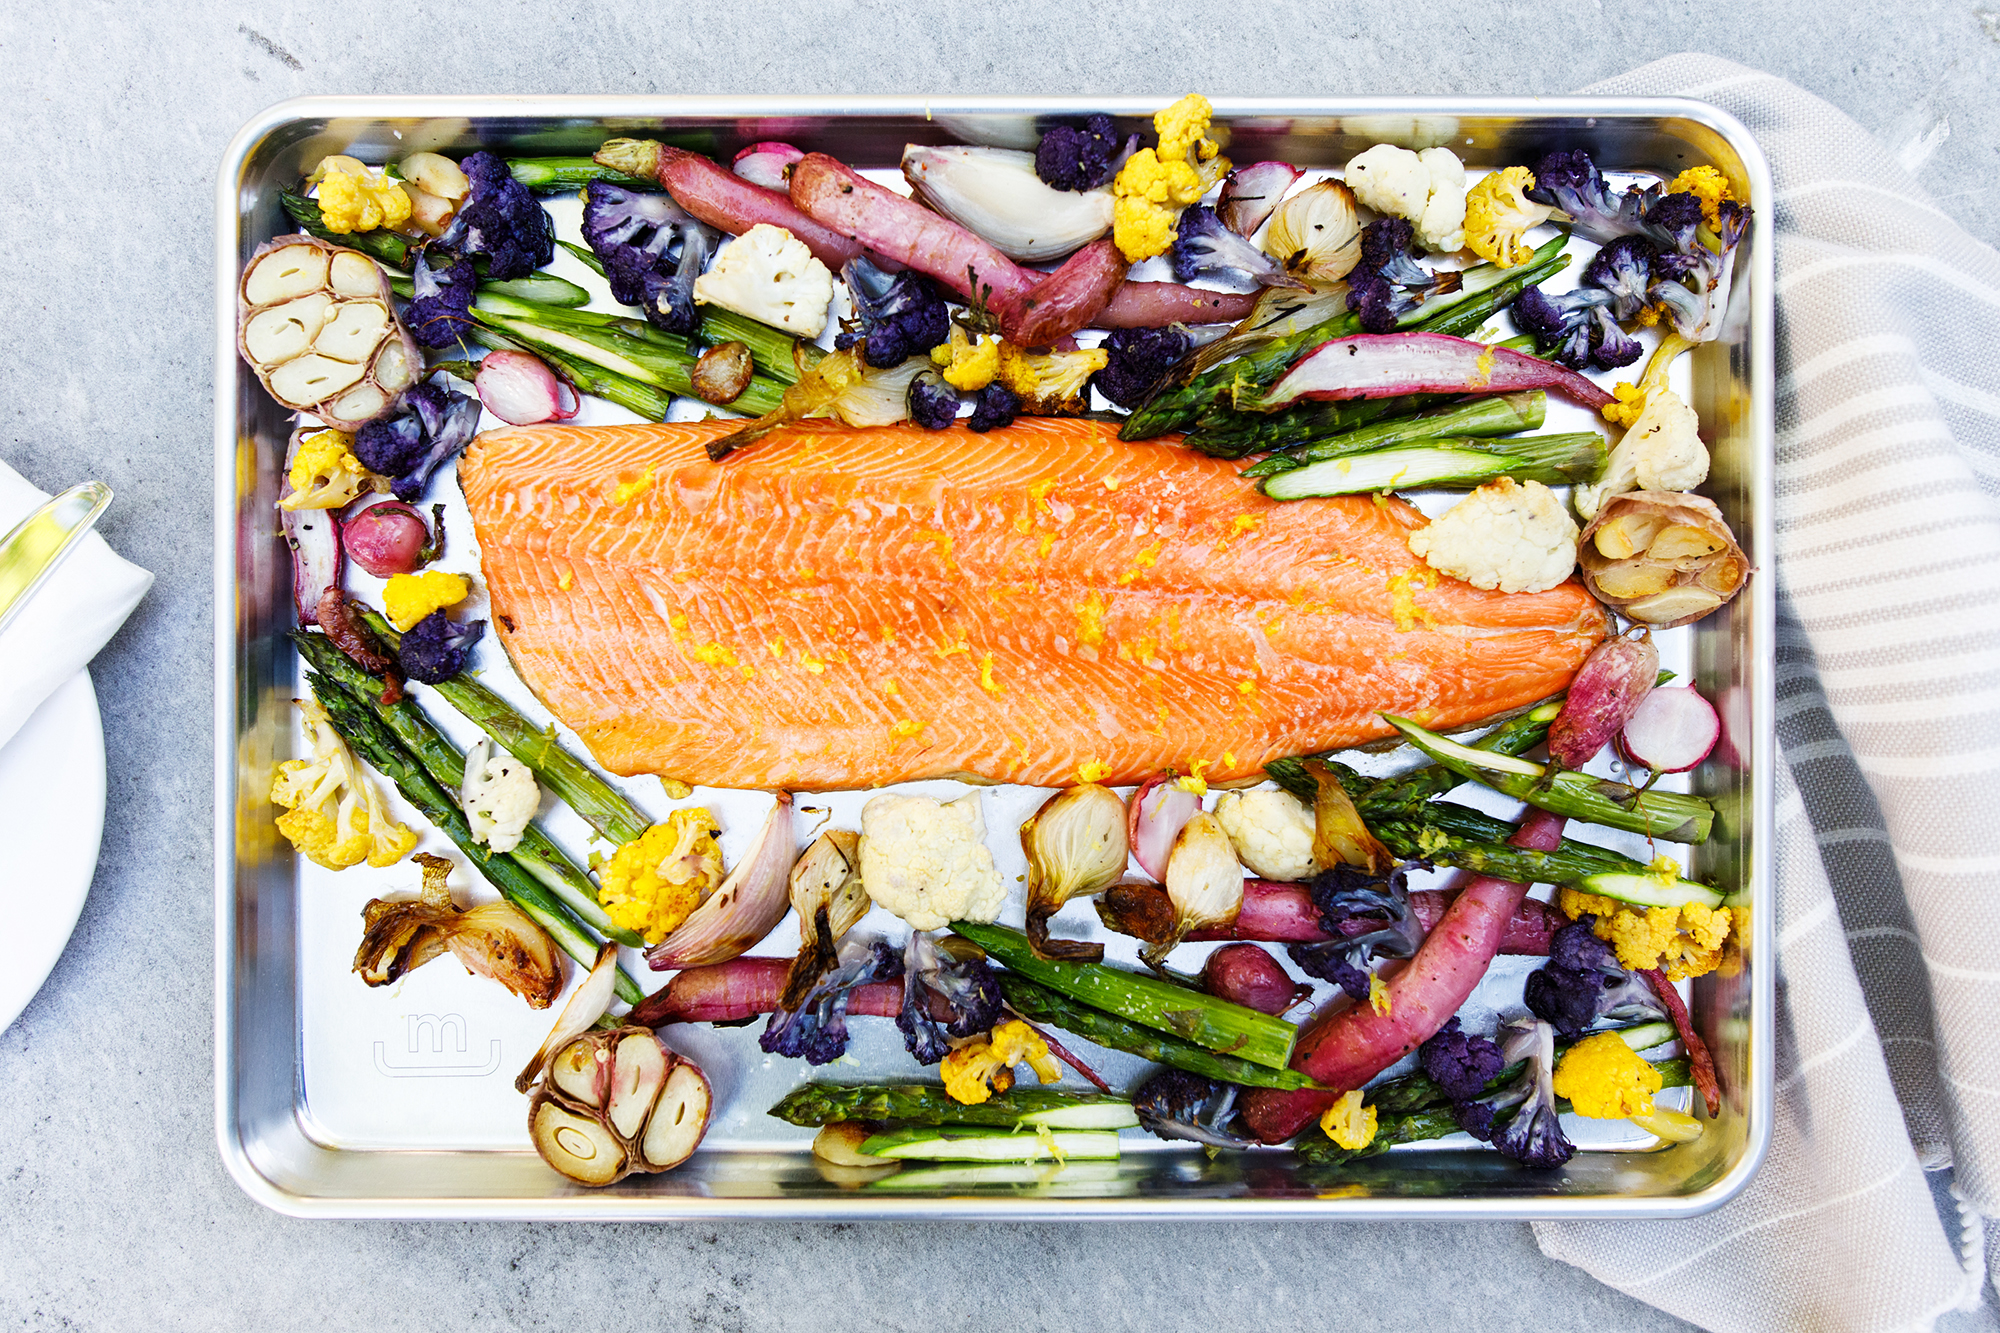 Salmon and vegetables on a Made In baking pan